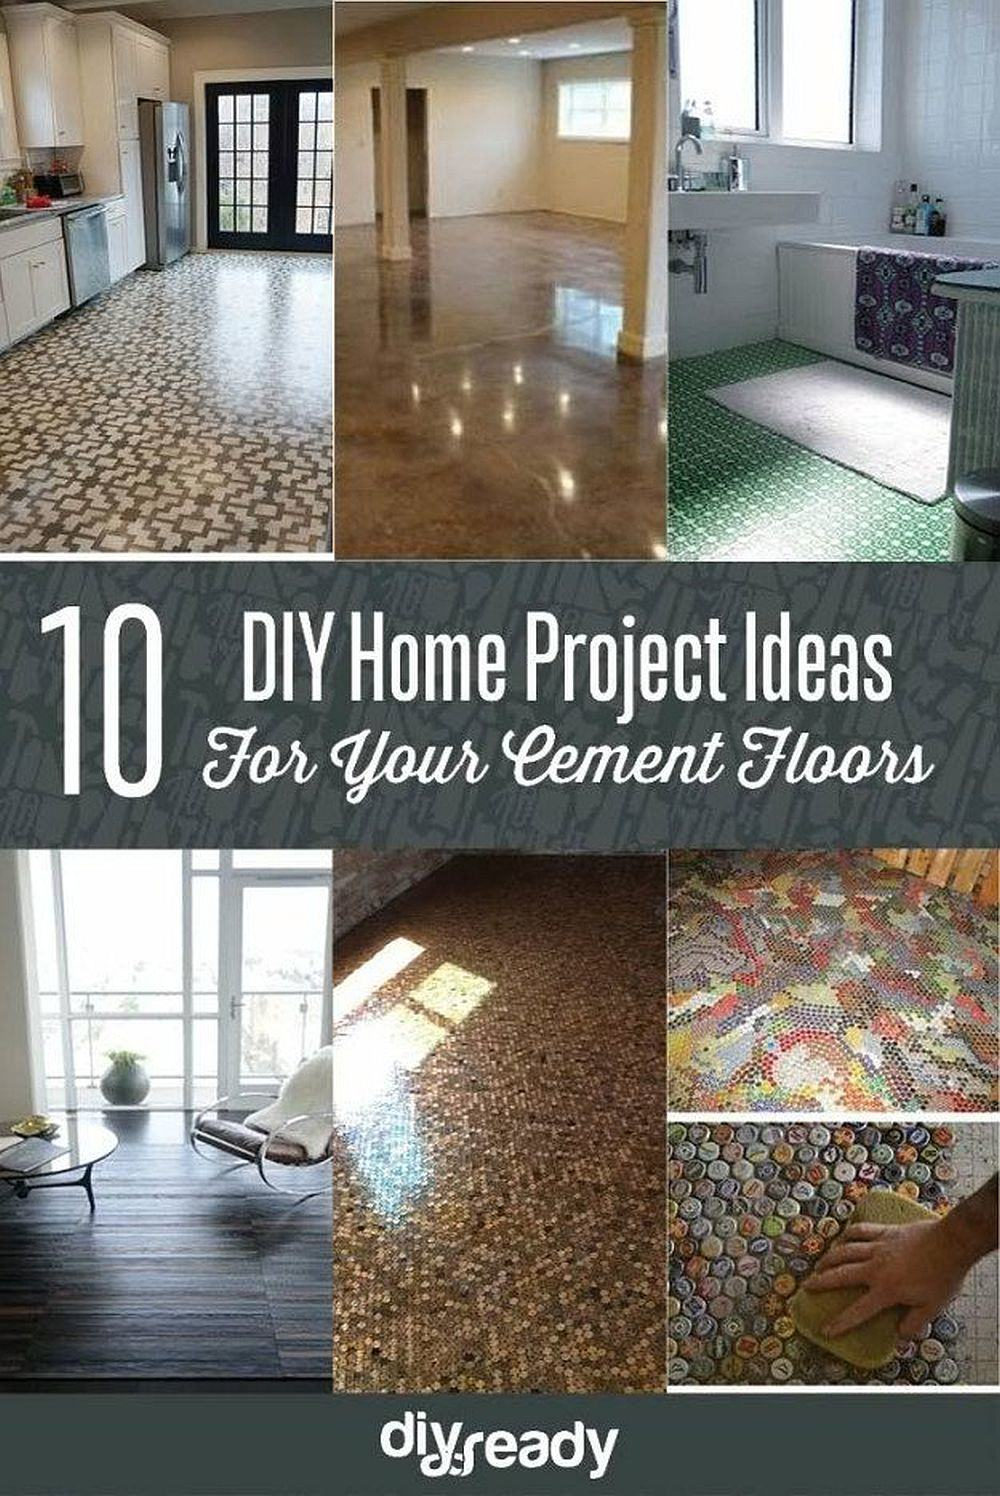 10 DIY Home Project Ideas For Your Cement Floors | DIY Projects's Ingenious DIY Hacks For Home Improvement